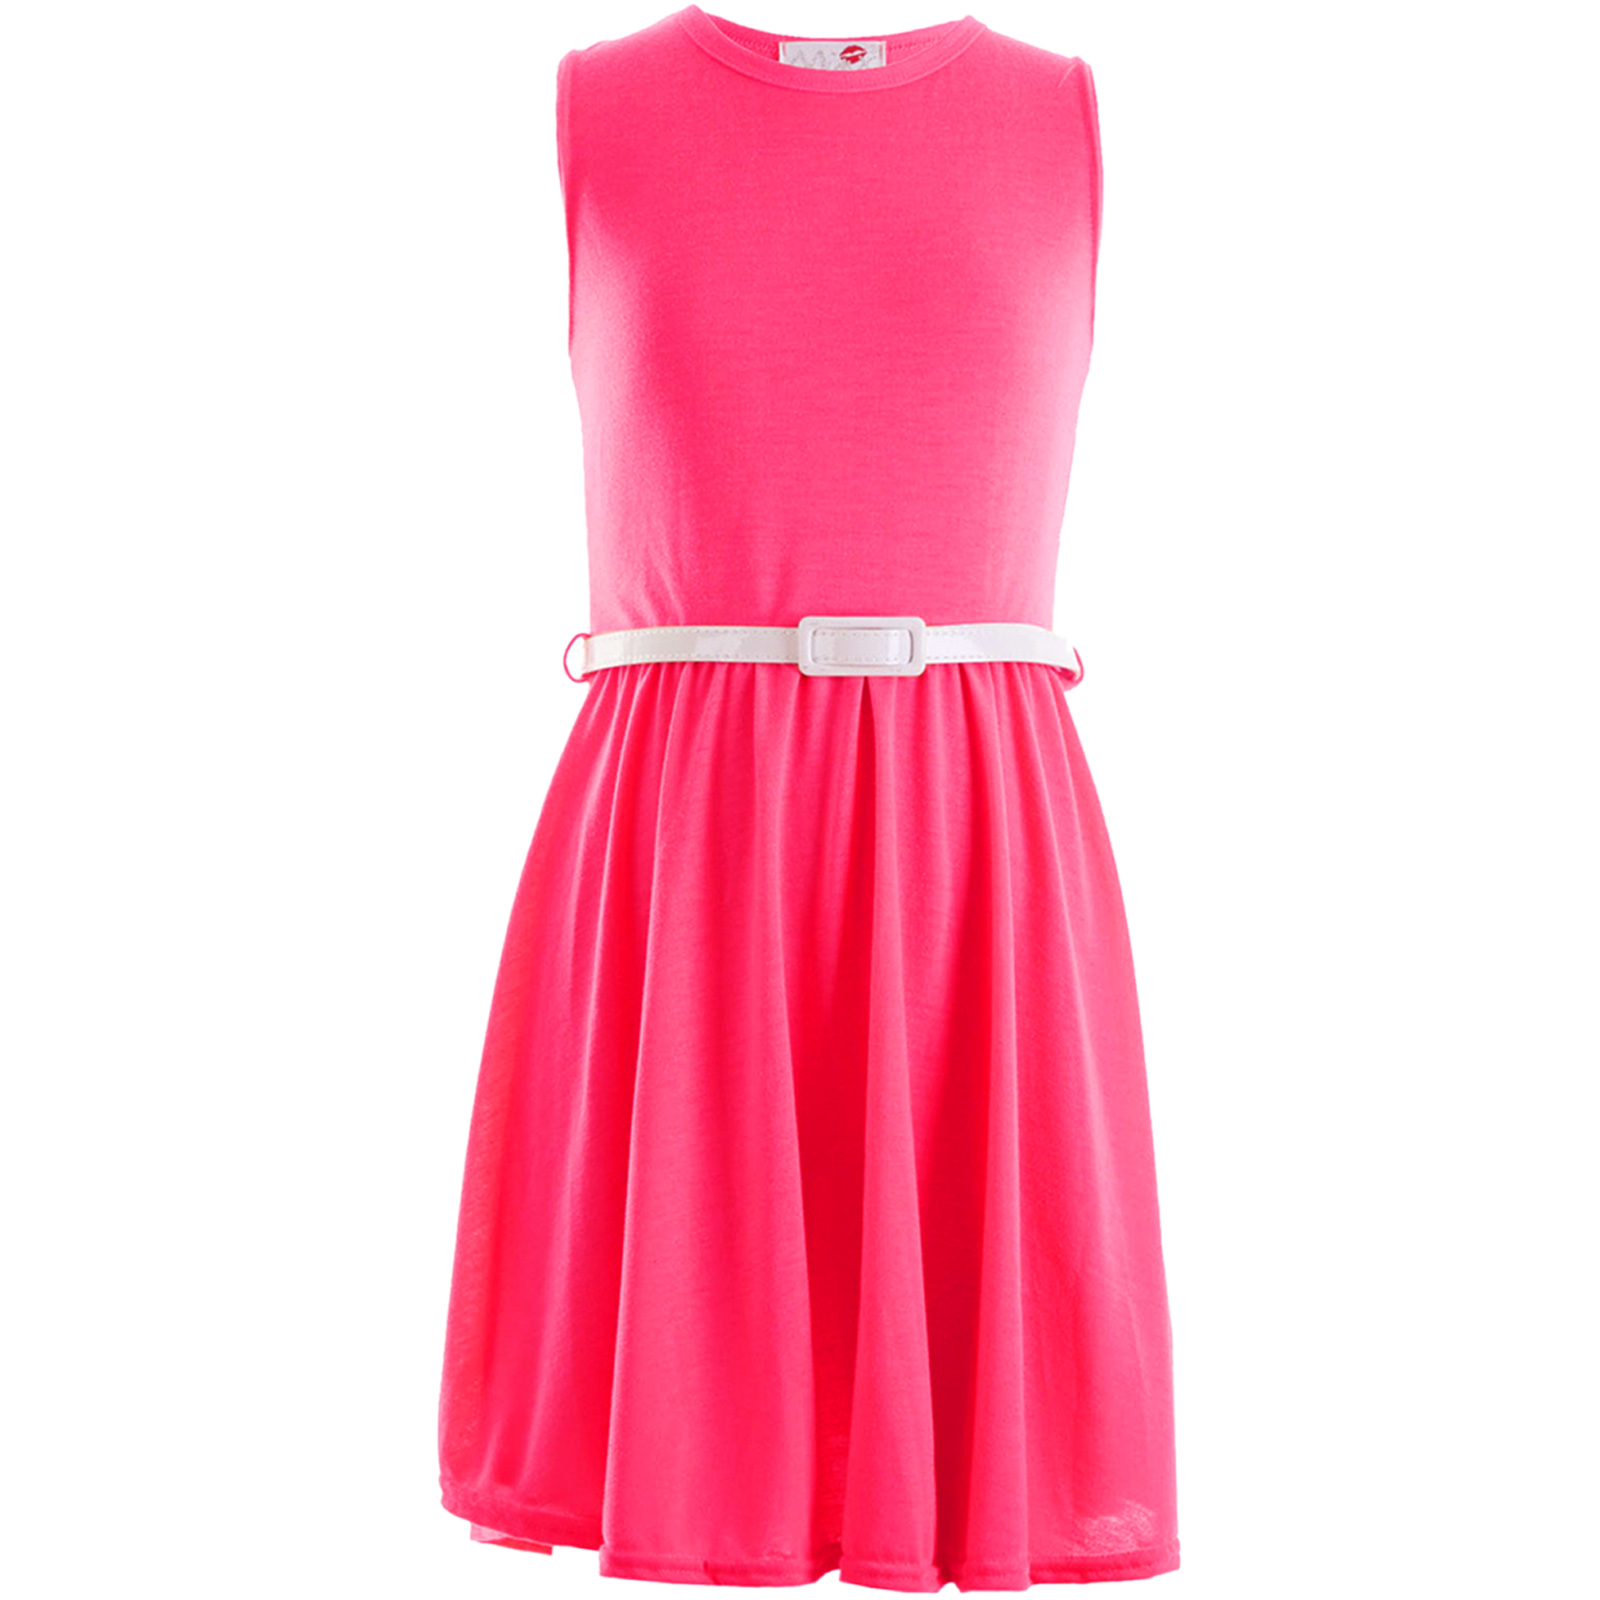 Girls Skater Dress Kids Neon Bright Holiday Party Dresses 7 8 9 10 ...